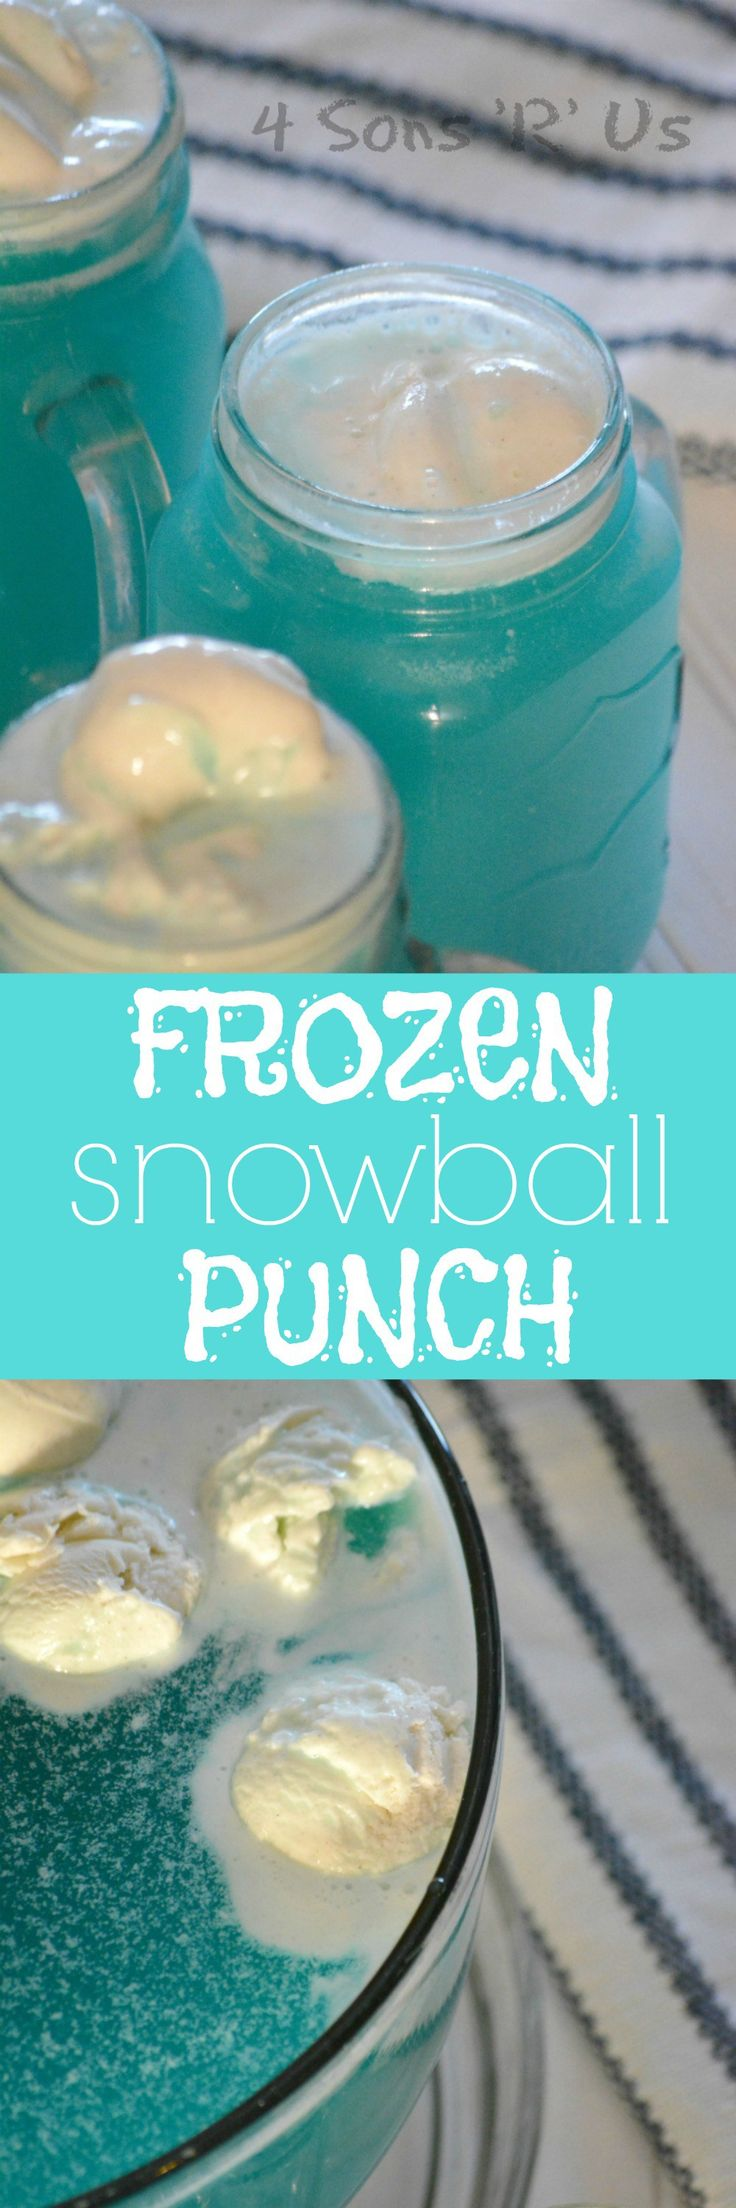 A yummy, sweet treat, this Frozen Snowball Punch makes a delicious beverage for any festive occasion. Packed with flavor and with only four ingredients, it's a winter weather must-have.